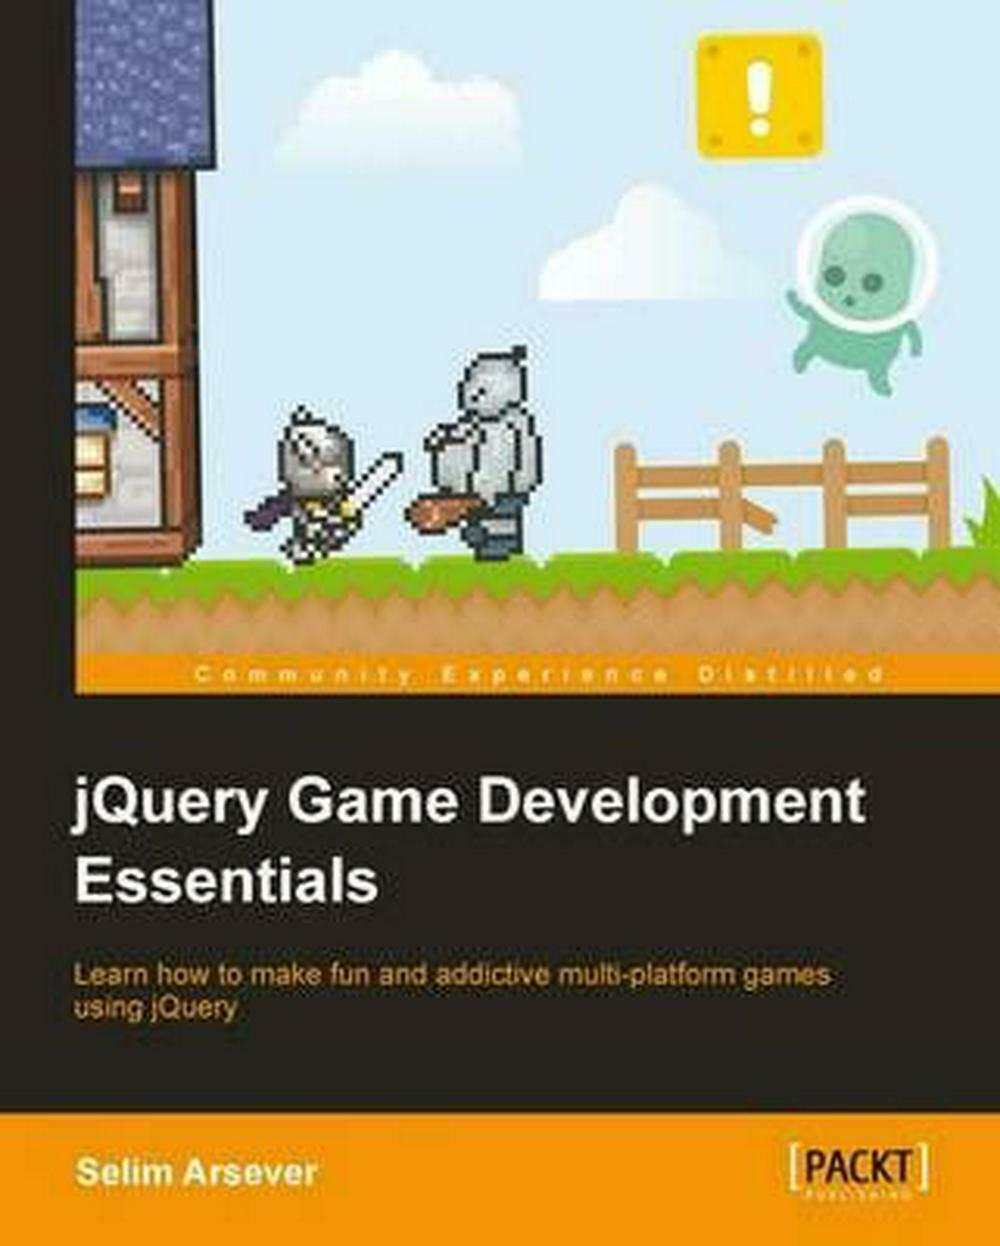 Jquery Game Development Essentials by Selim Arsever (English) Paperback Book Fre |